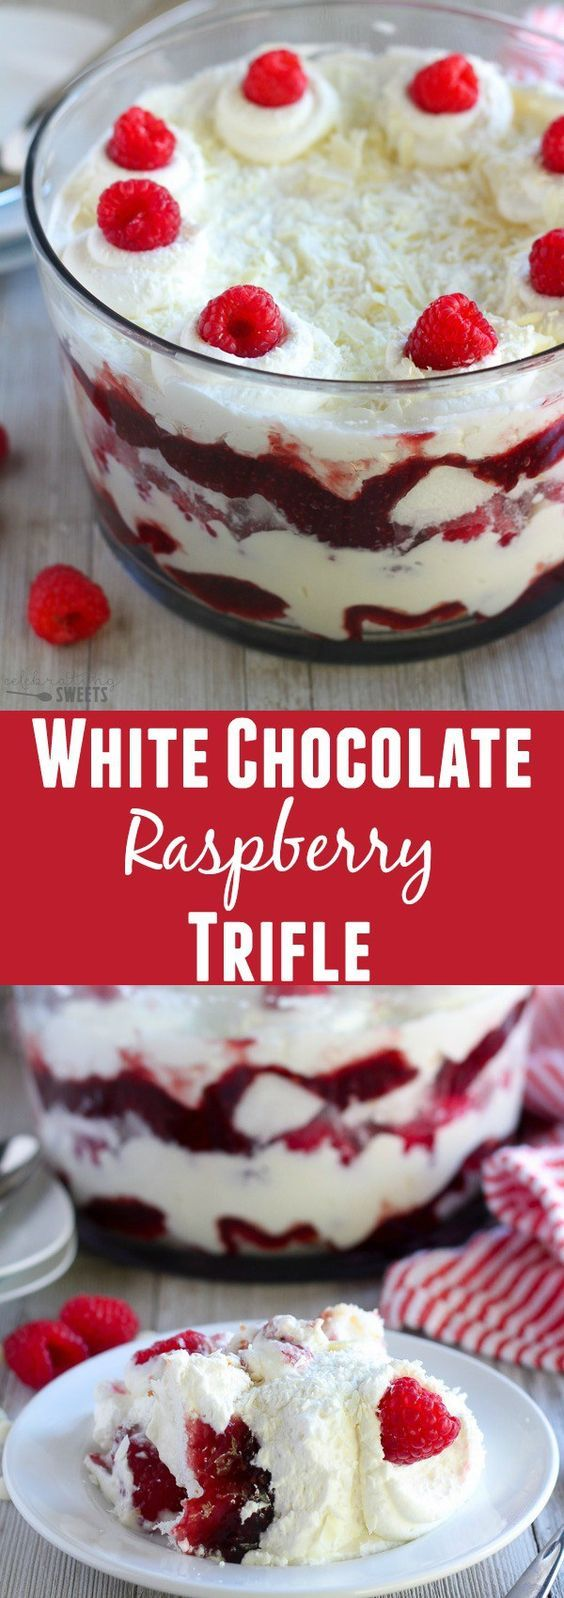 INGREDIENTS     WHITE CHOCOLATE MOUSSE   1/2 cup good quality white chocolate chips I use Guittard or Ghirardelli   1/3 cup chilled hea...